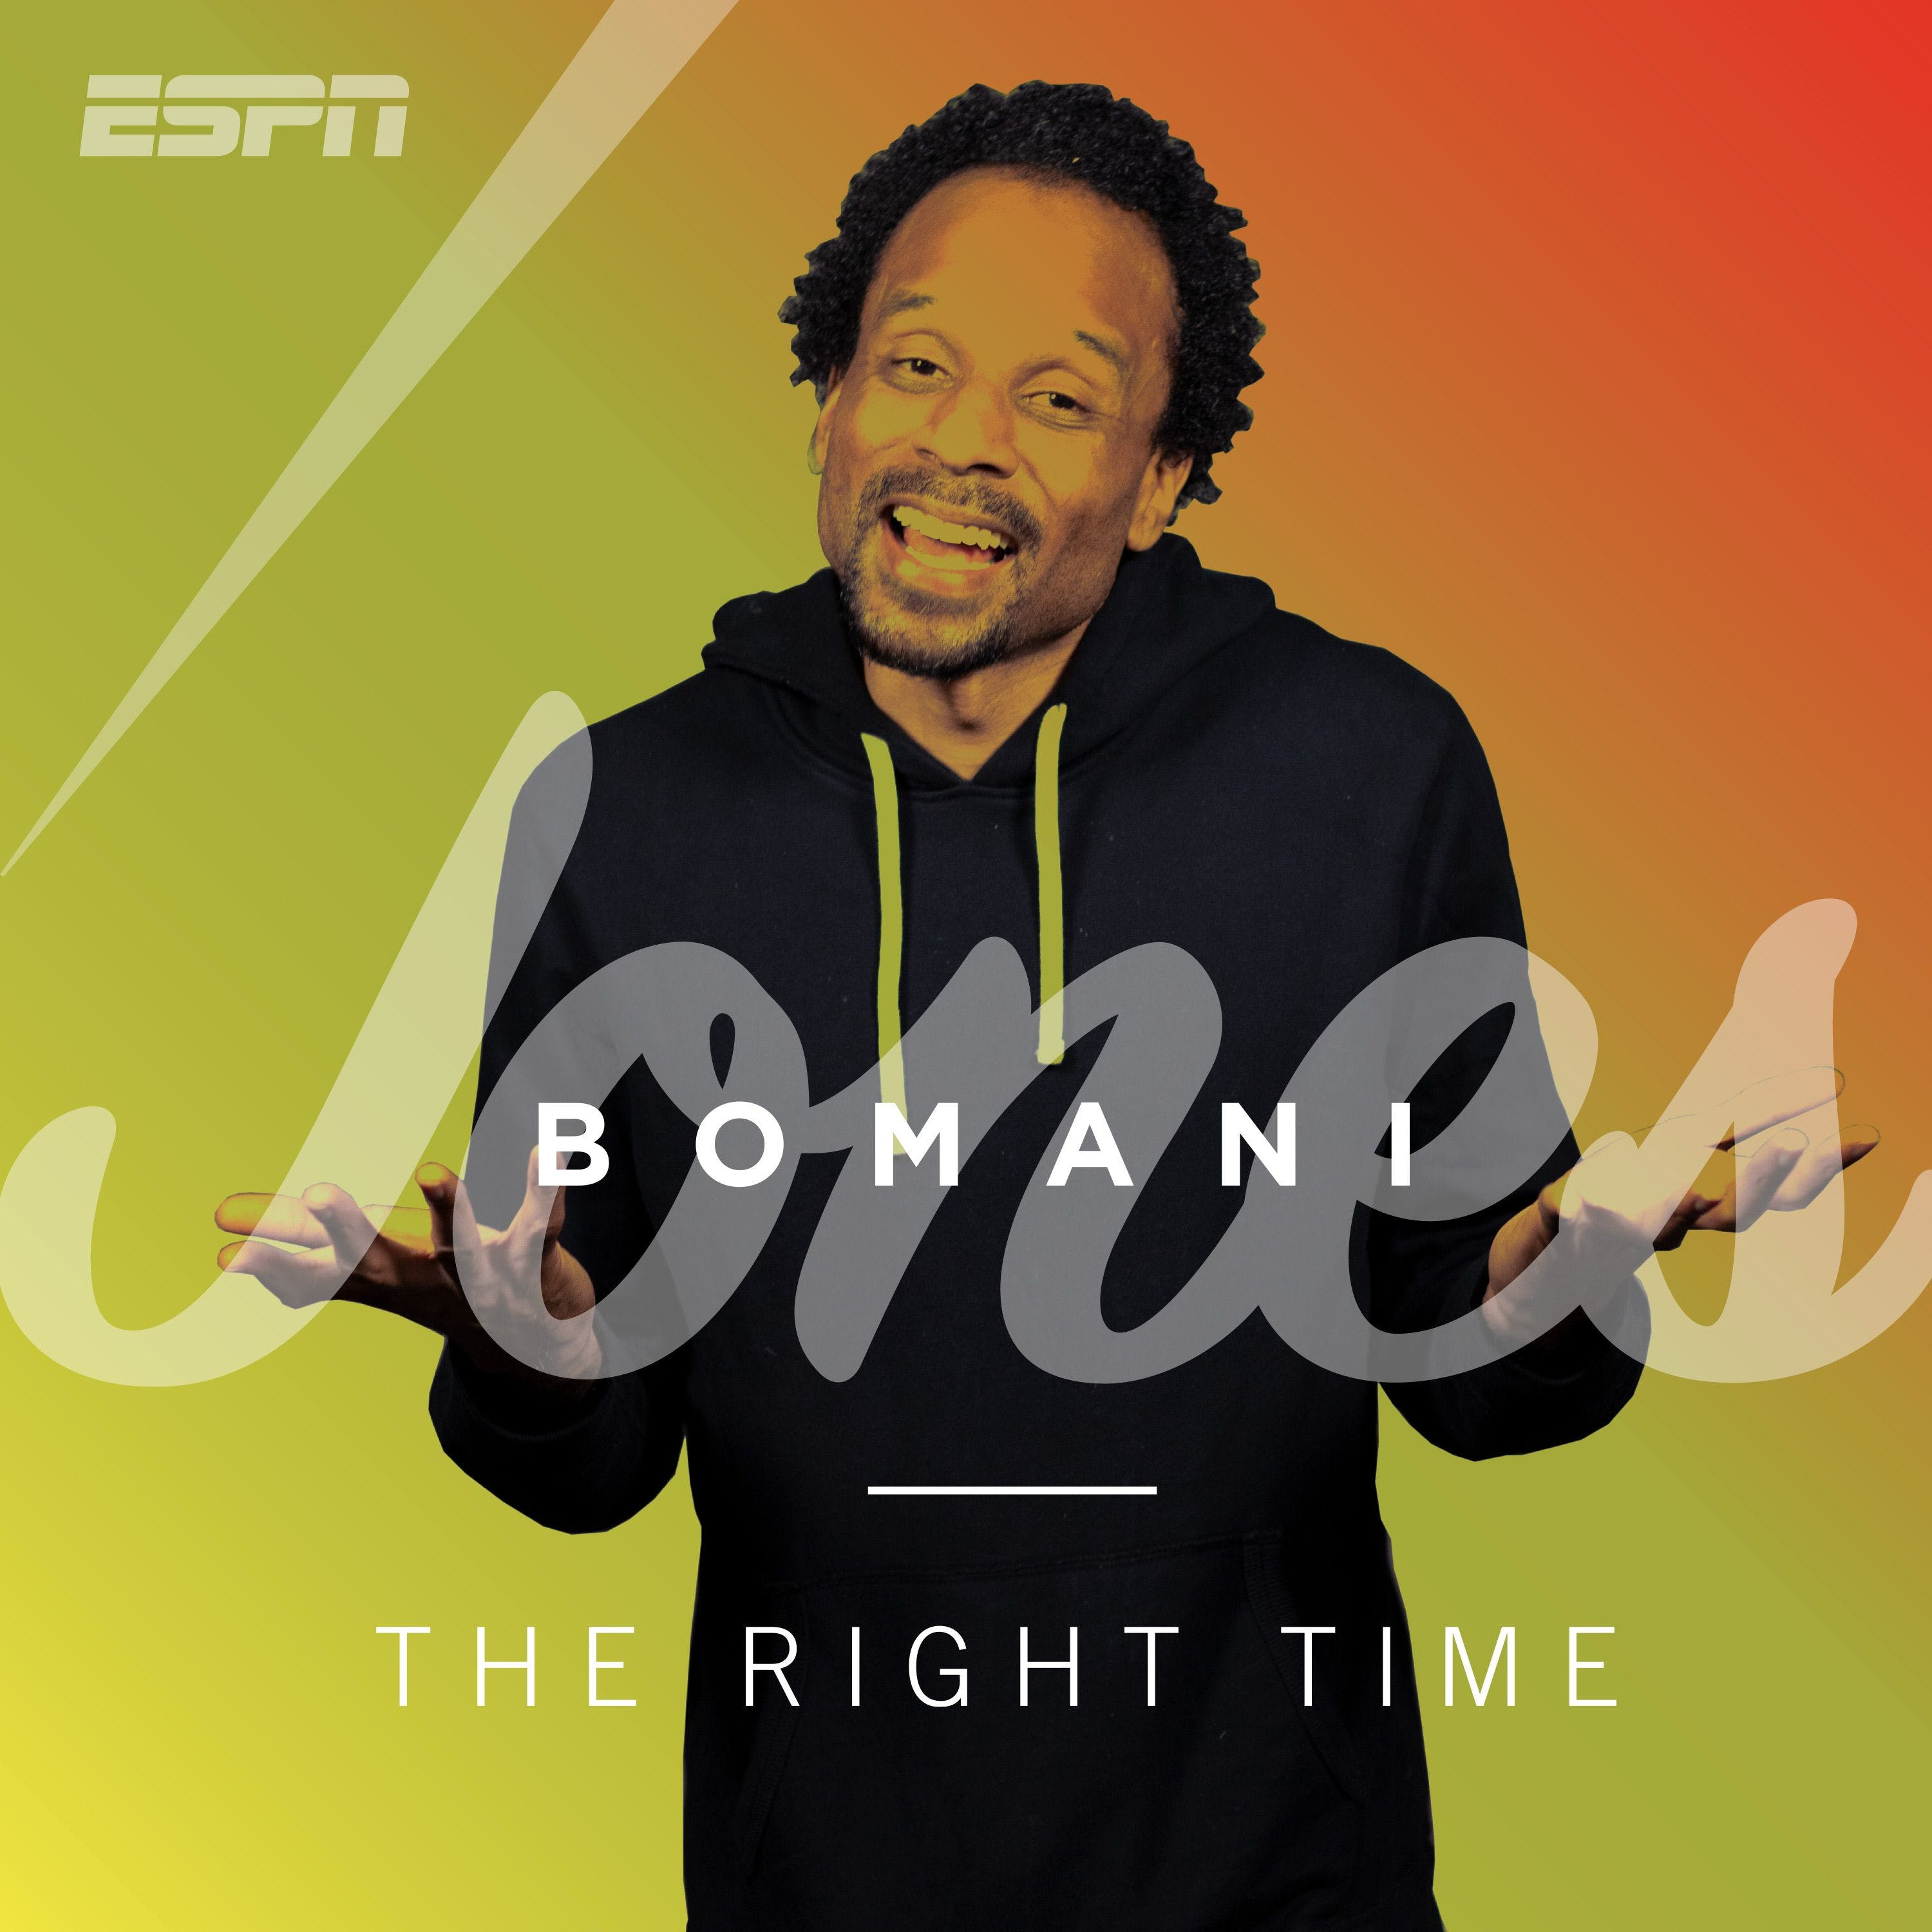 The Right Time with Bomani Jones